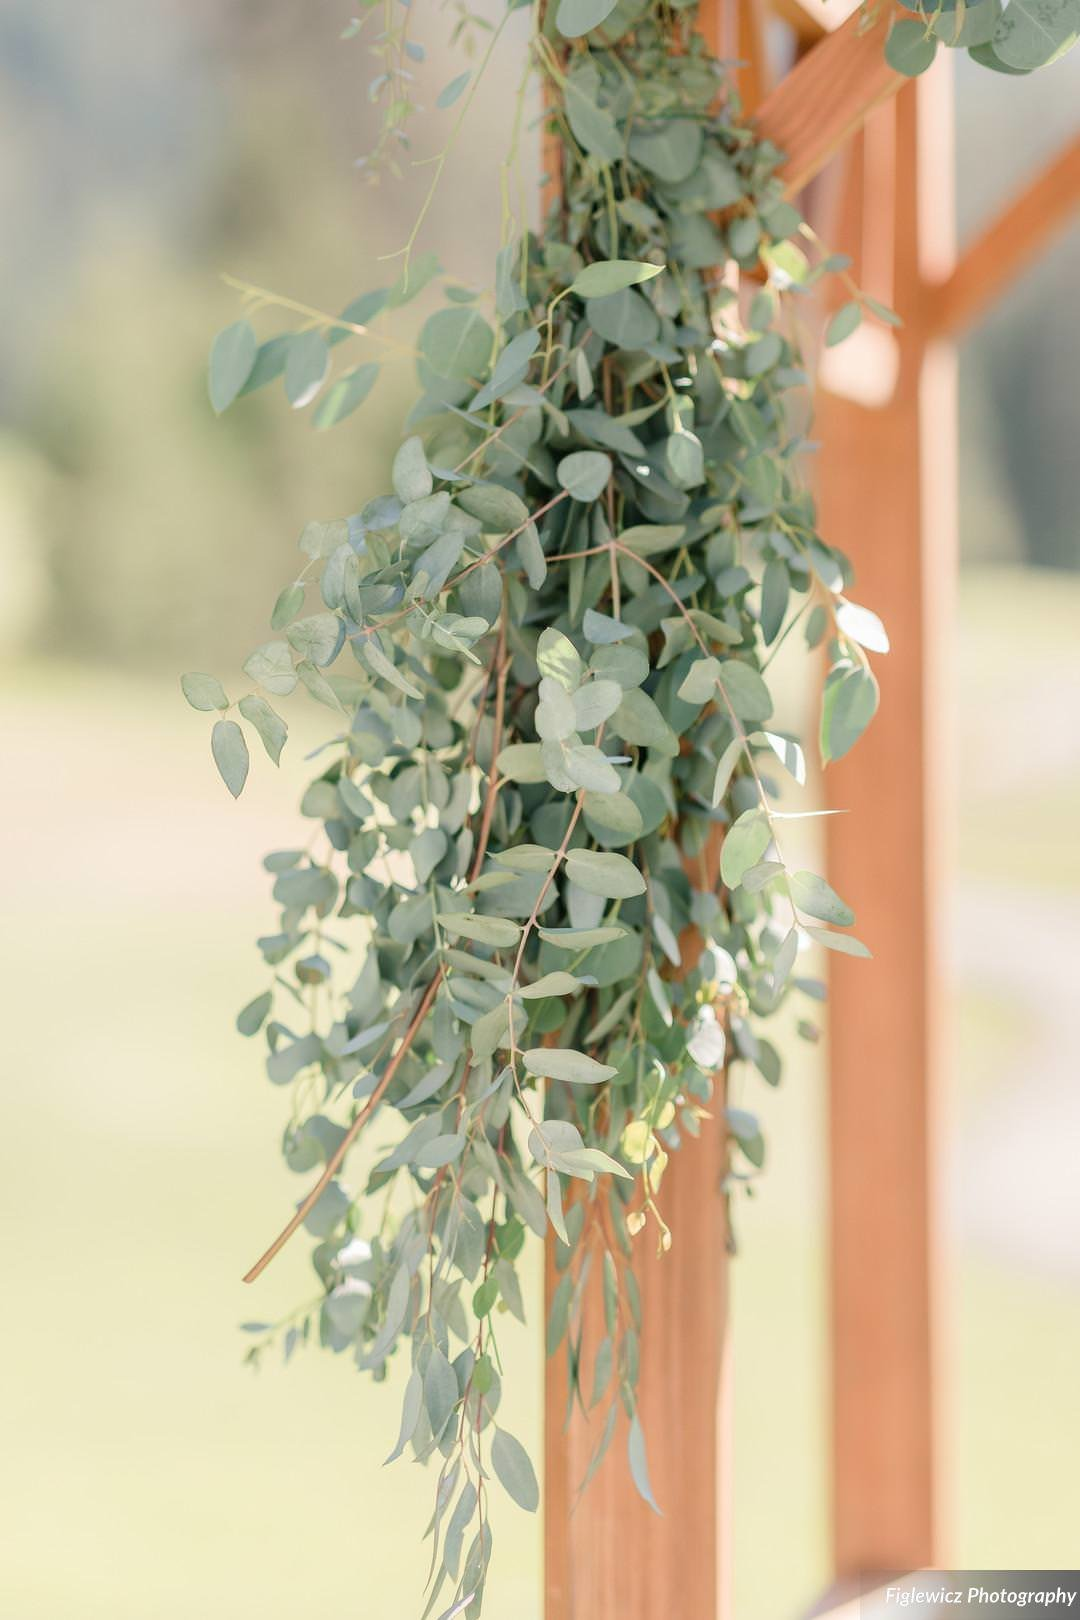 Garden_Tinsley_FiglewiczPhotography_LakeTahoeWeddingSquawValleyCreekTaylorBrendan00080_big